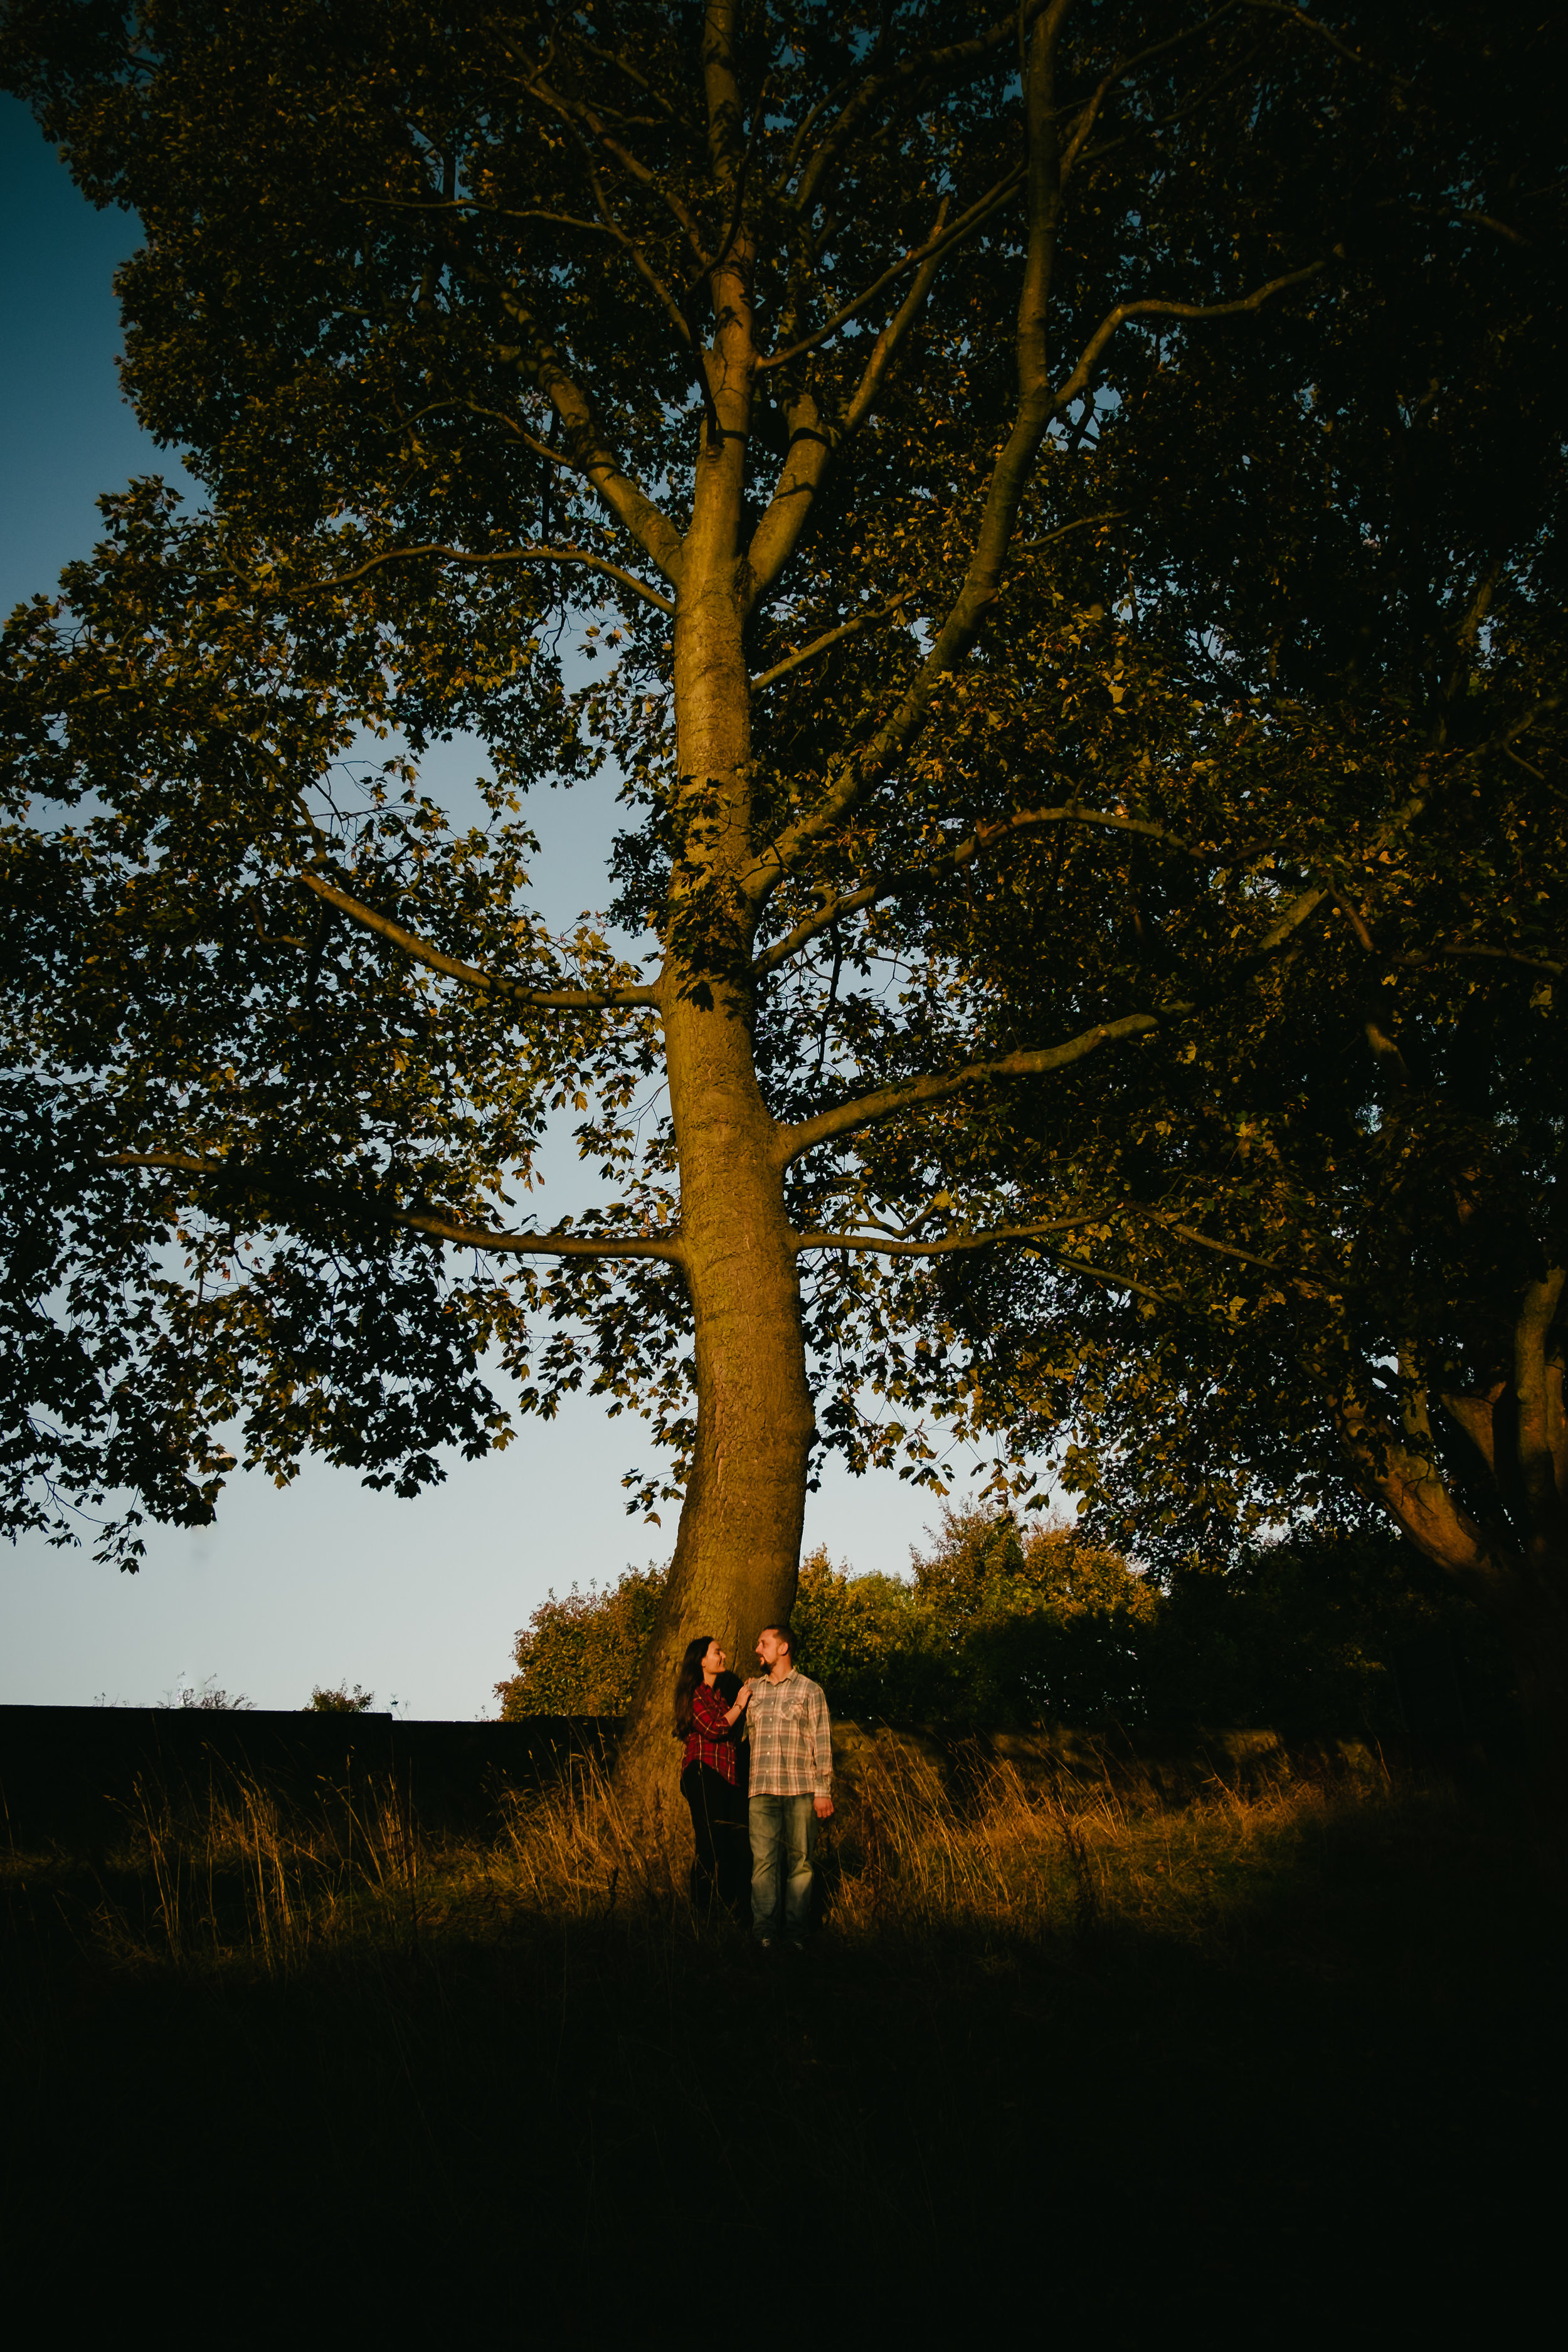 Jen and Joe stand at the foot of a large tree bathed in warm autumn light at Hylton Castle Sunderland on their pre-wedding photo shoot